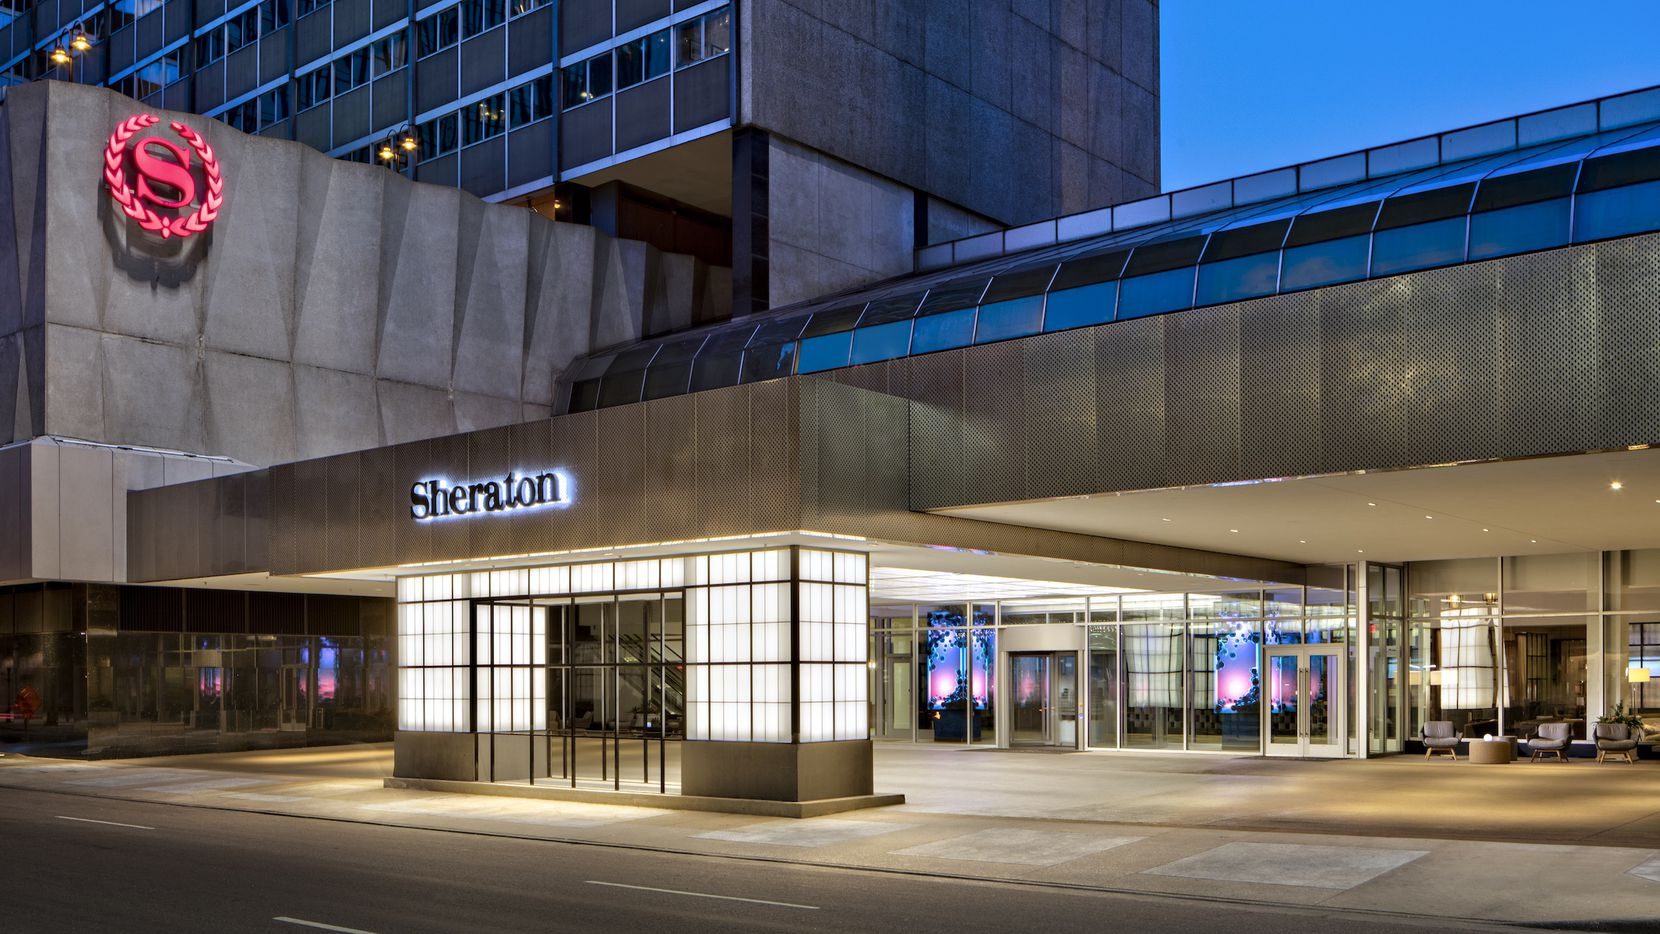 The Sheraton Dallas got a new entry as part of the redo.